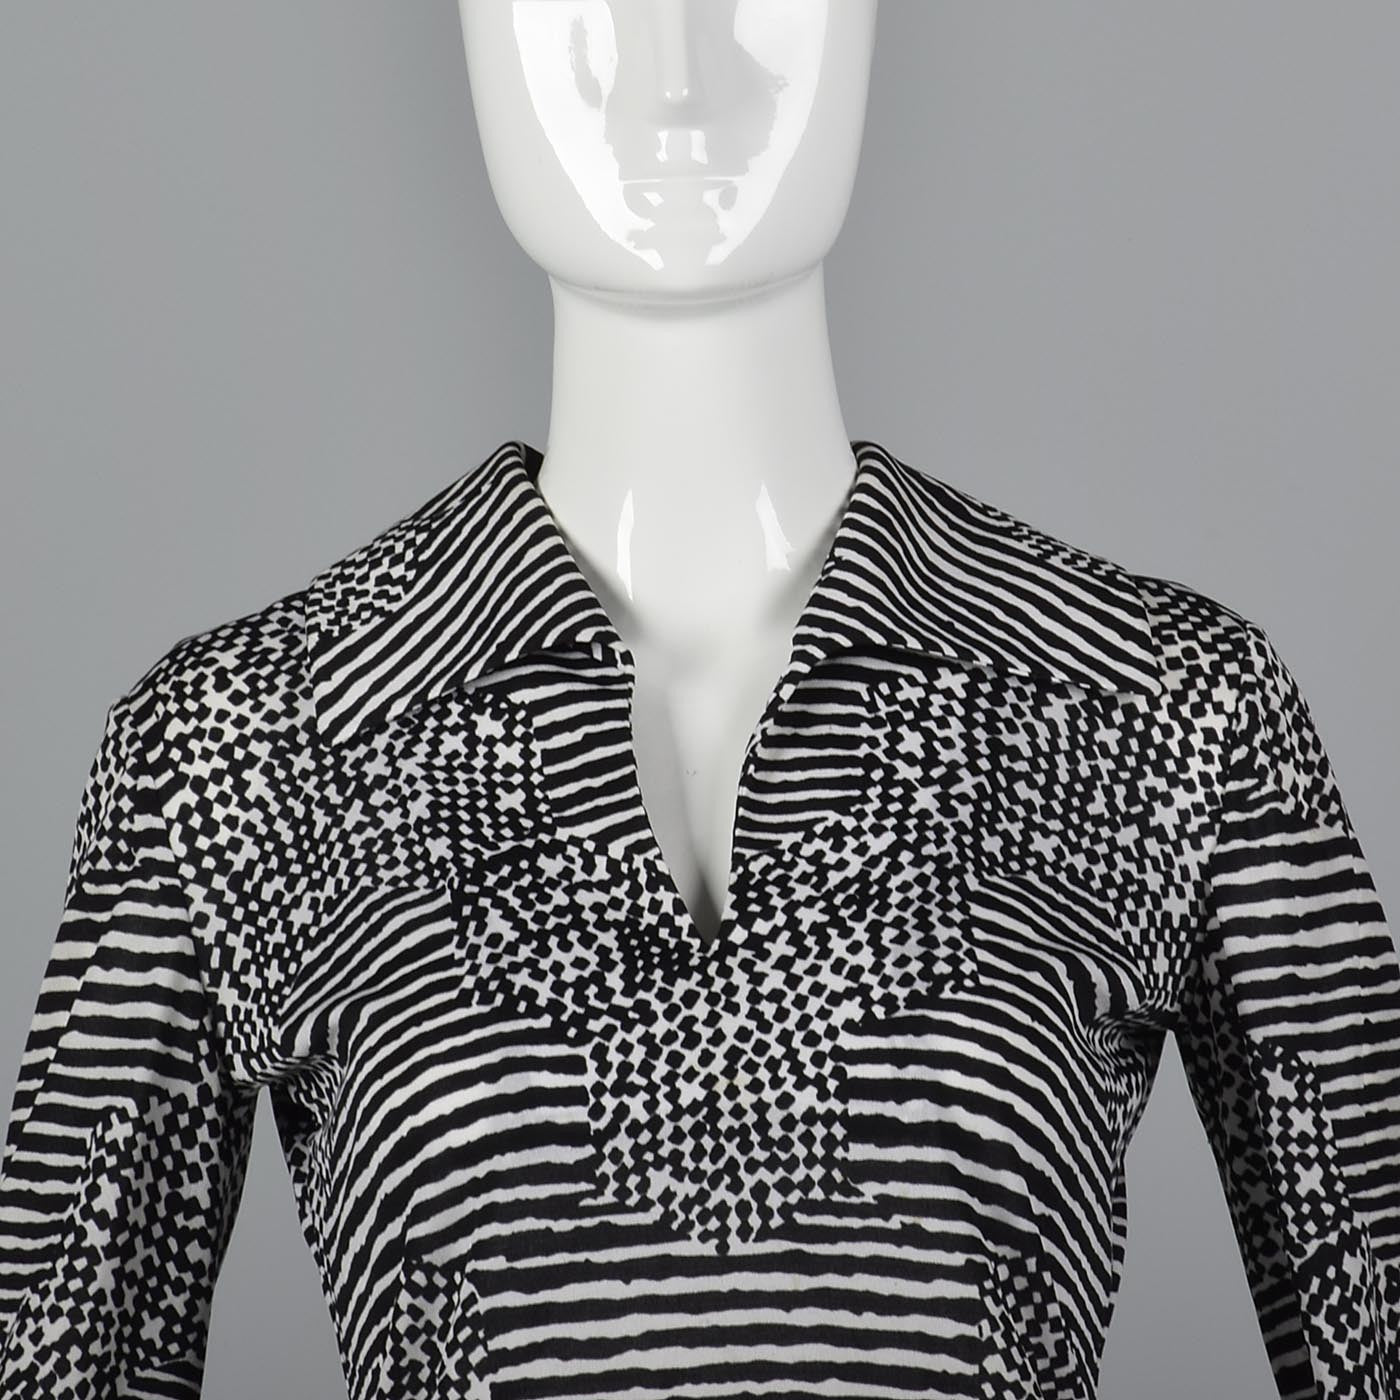 1960s La Mendola Two Piece Seprates Set in Black & White Op Art